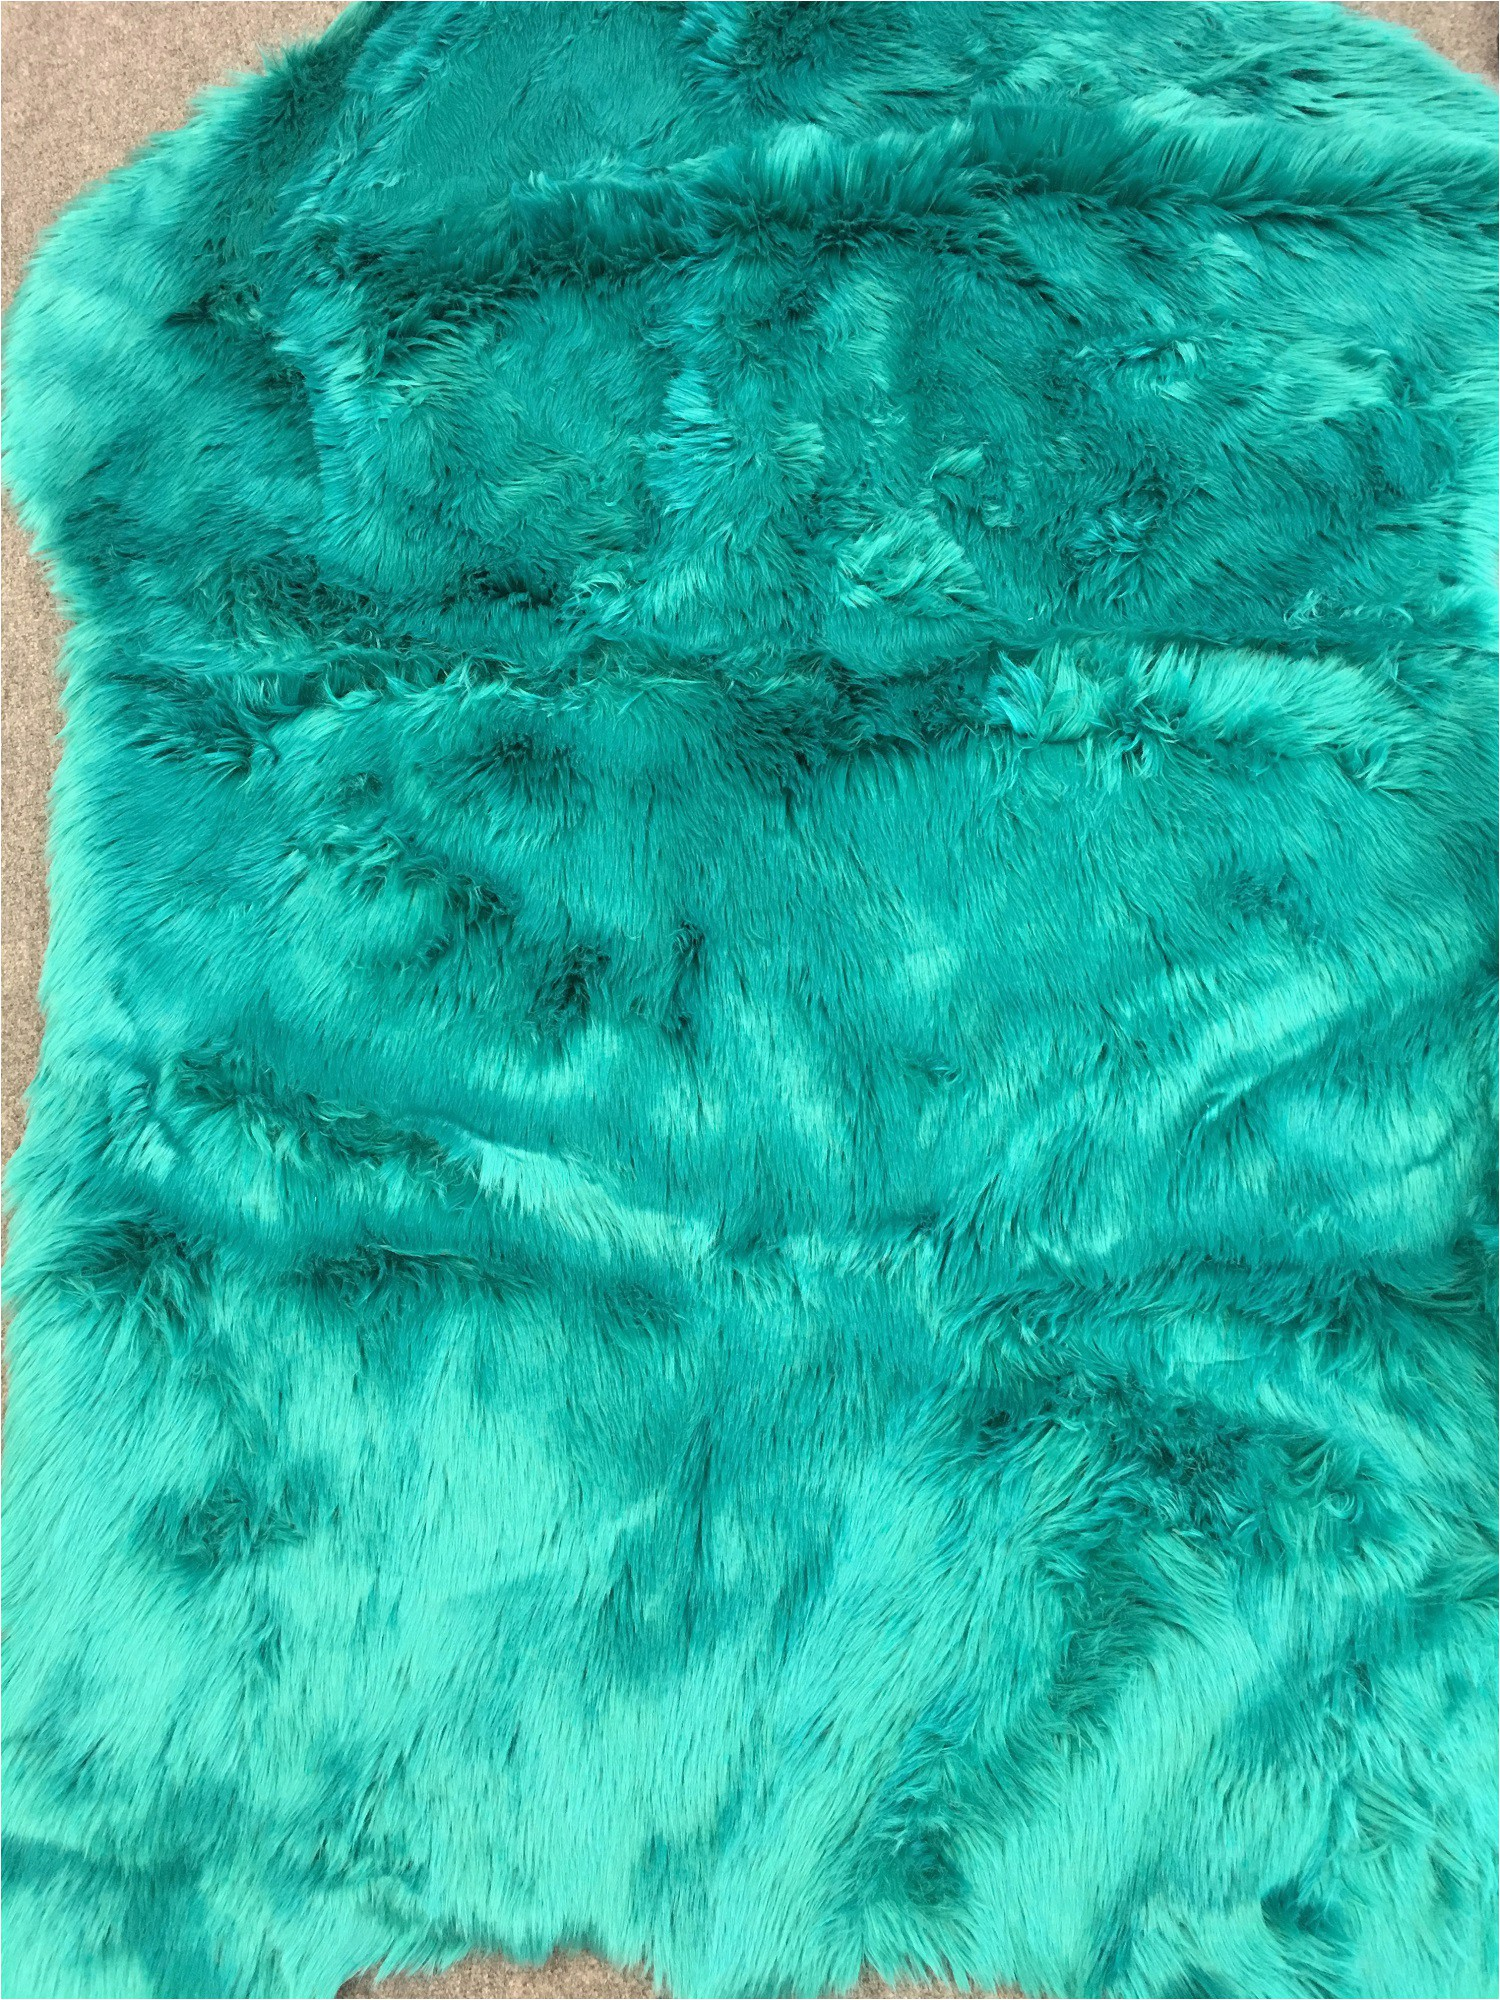 Blue Faux Sheepskin Rug area Rugs&seat sofa Cover with Turquoise Faux Sheepskin for Livingroom